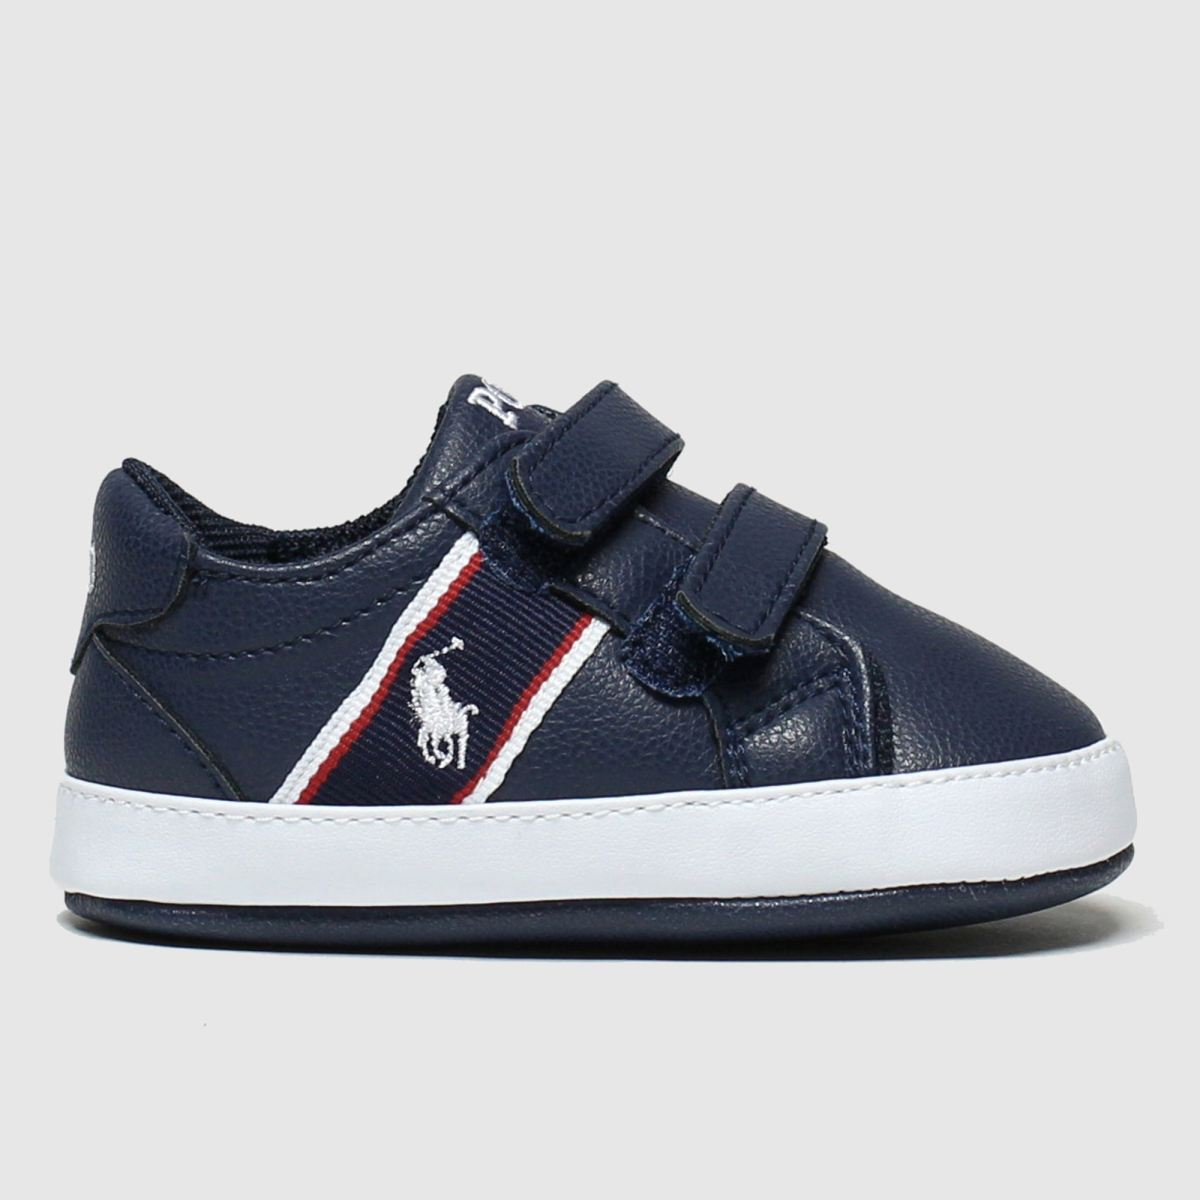 Polo Ralph Lauren Navy & White Quigley Crib Shoes Baby